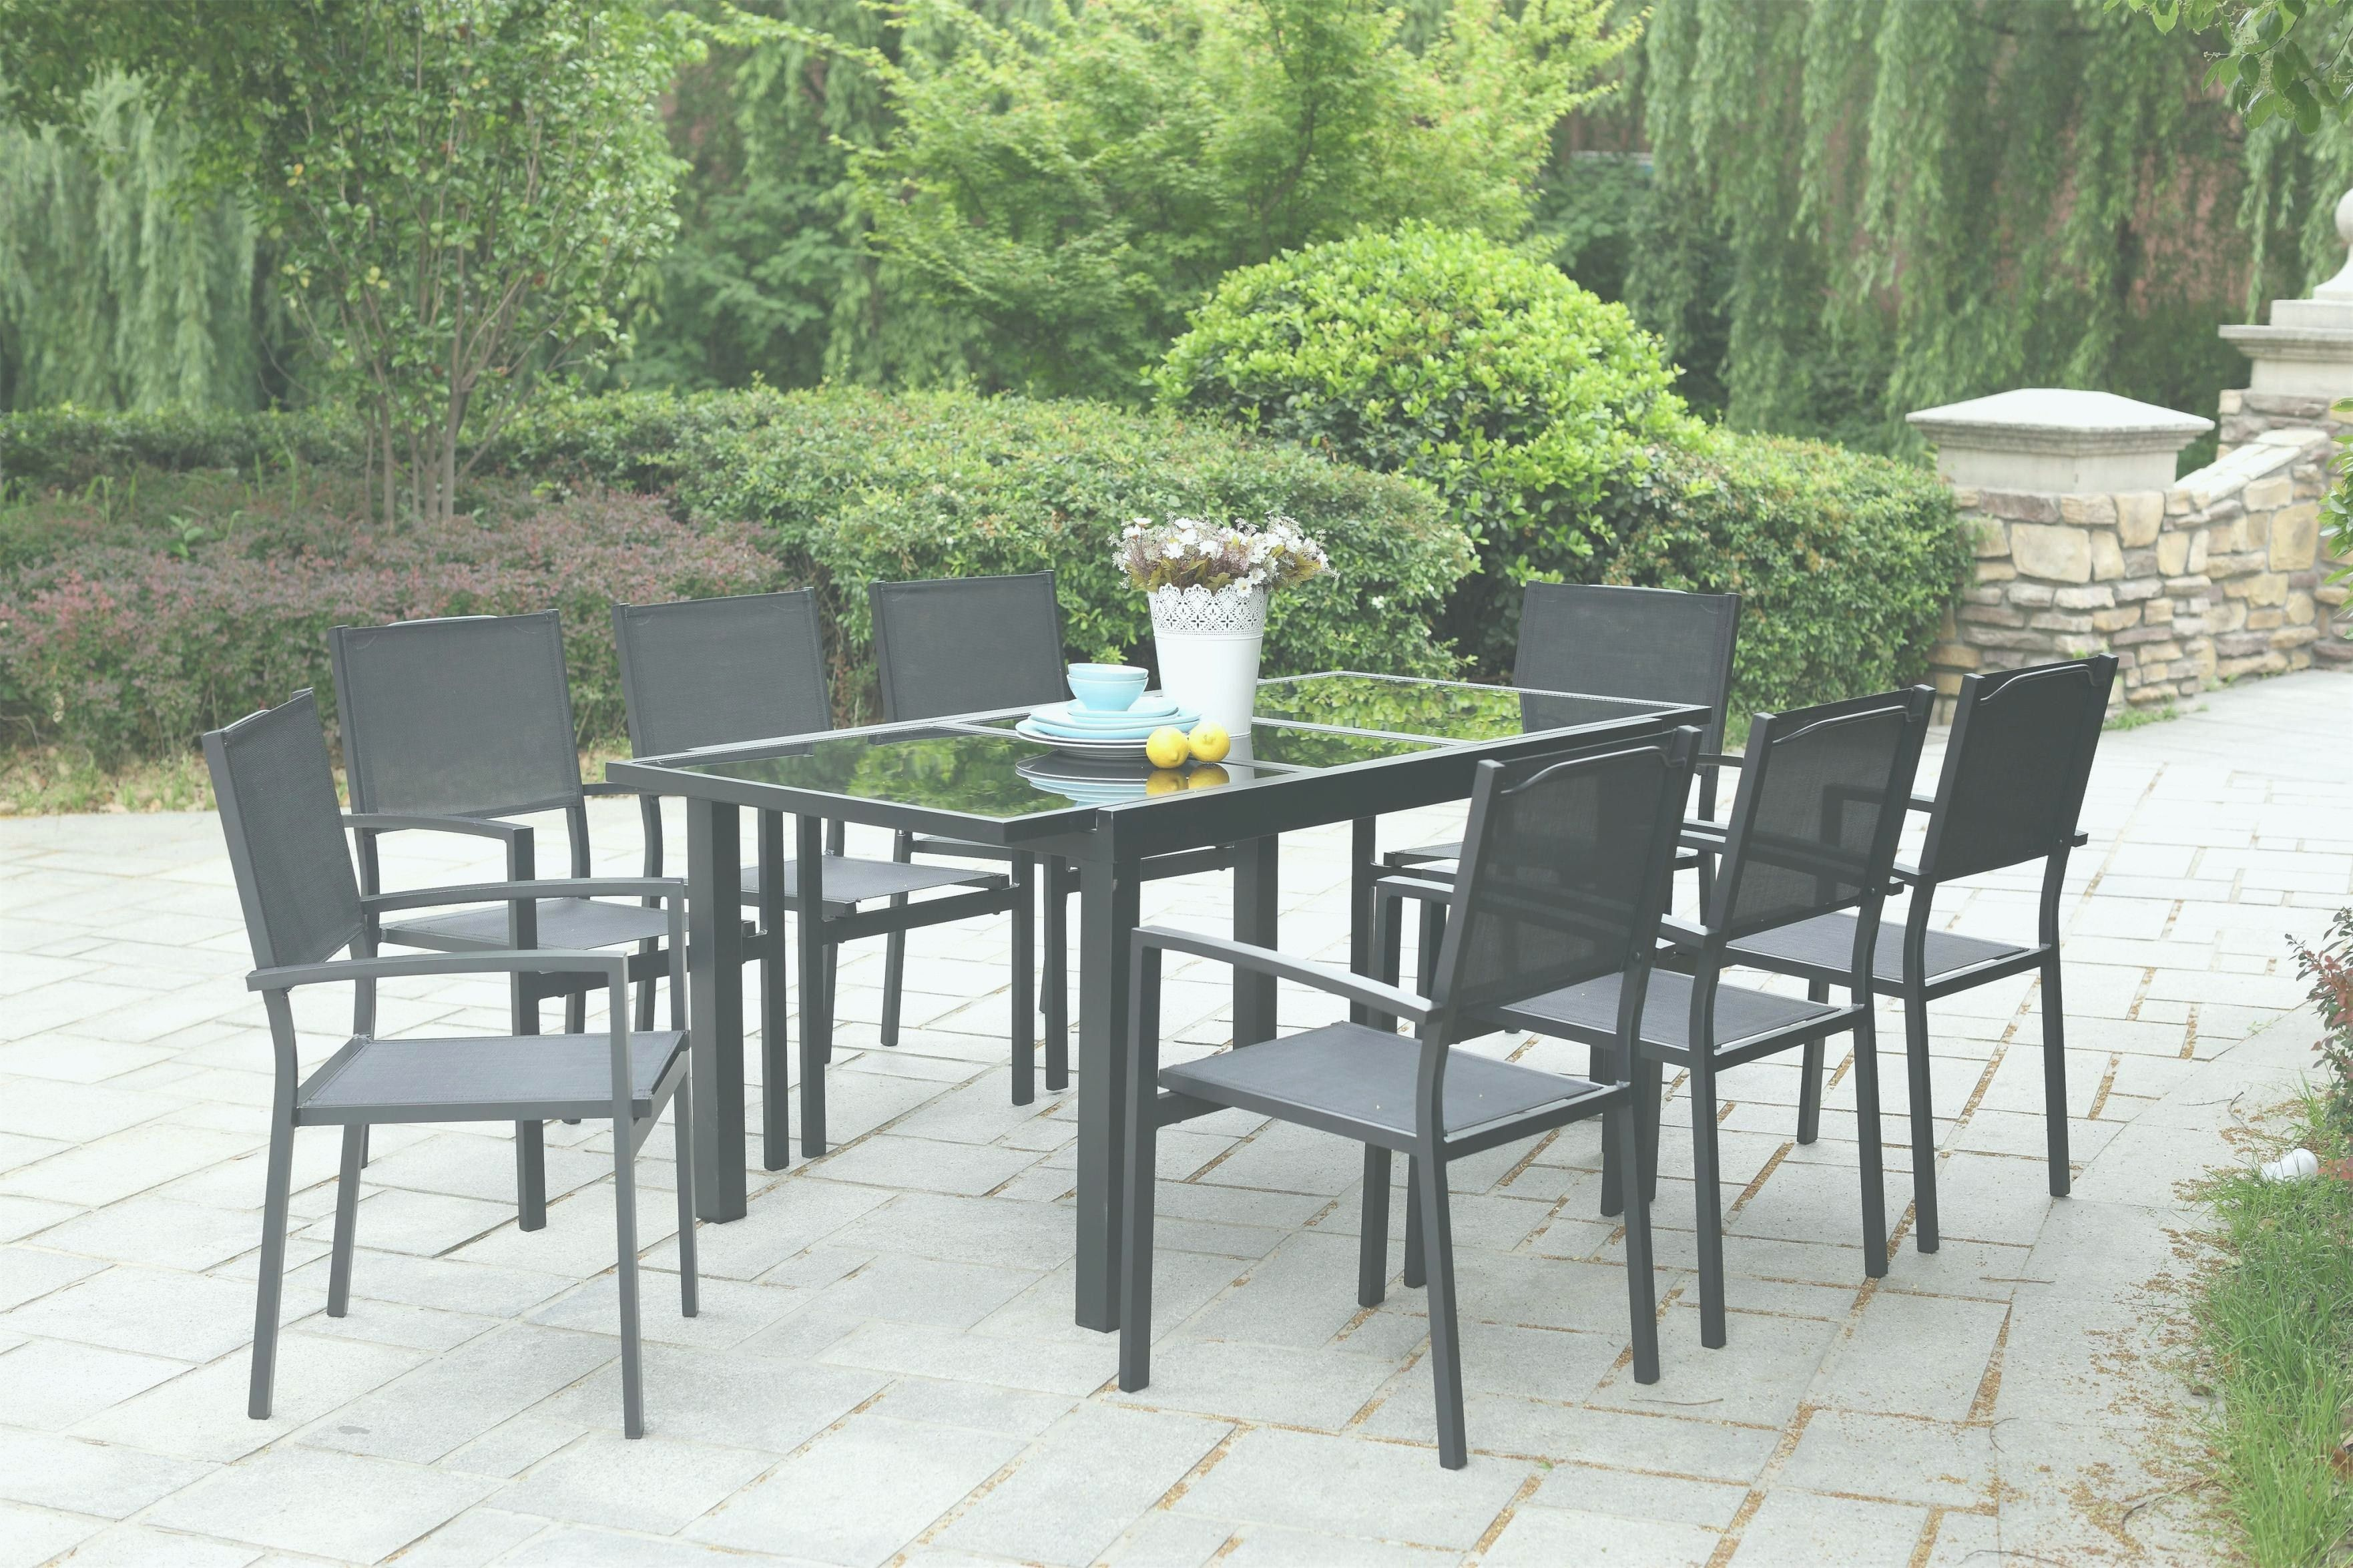 Awesome Palette Plastique Castorama Outdoor Tables Outdoor Furniture Outdoor